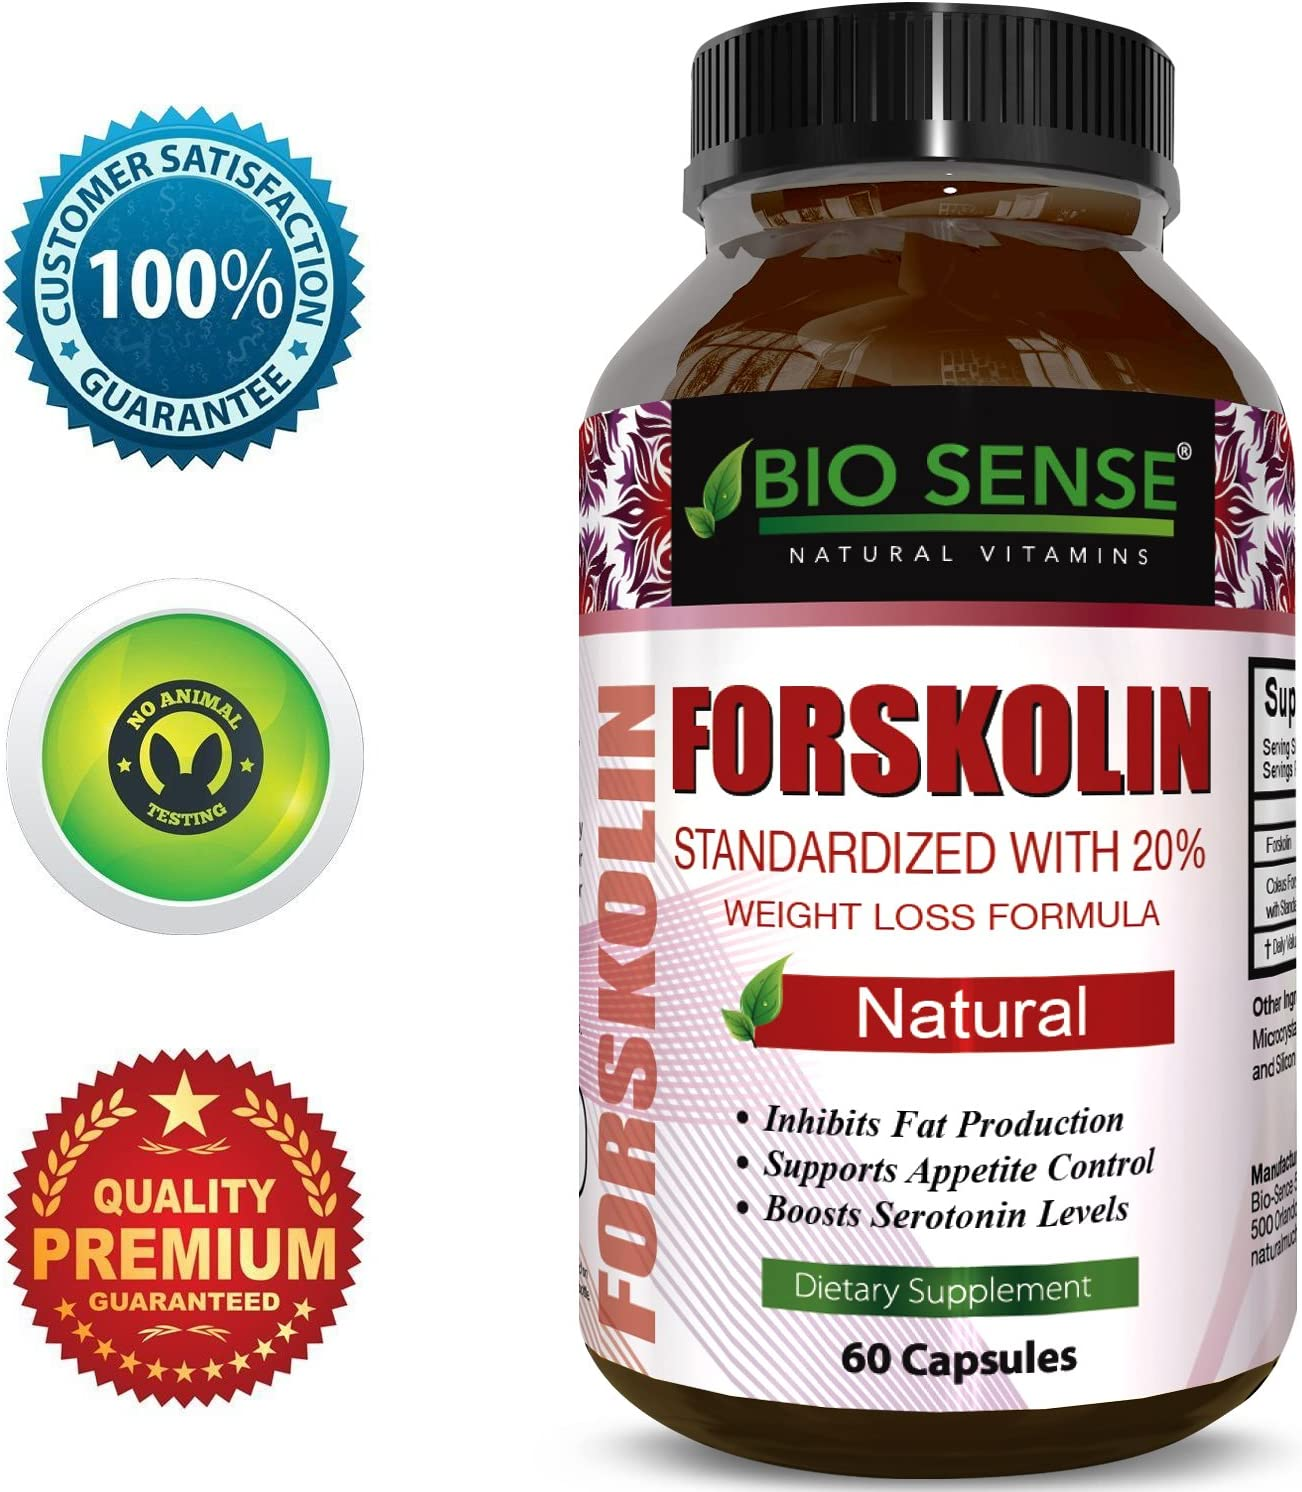 Forskolin Extract Weight Loss Supplement Natural Diet Pills for Men Women Natural Fat Burn Benefits Boost Metabolism Curb Appetite Preserve Lean Body Mass Pure Coleus Forskohlii